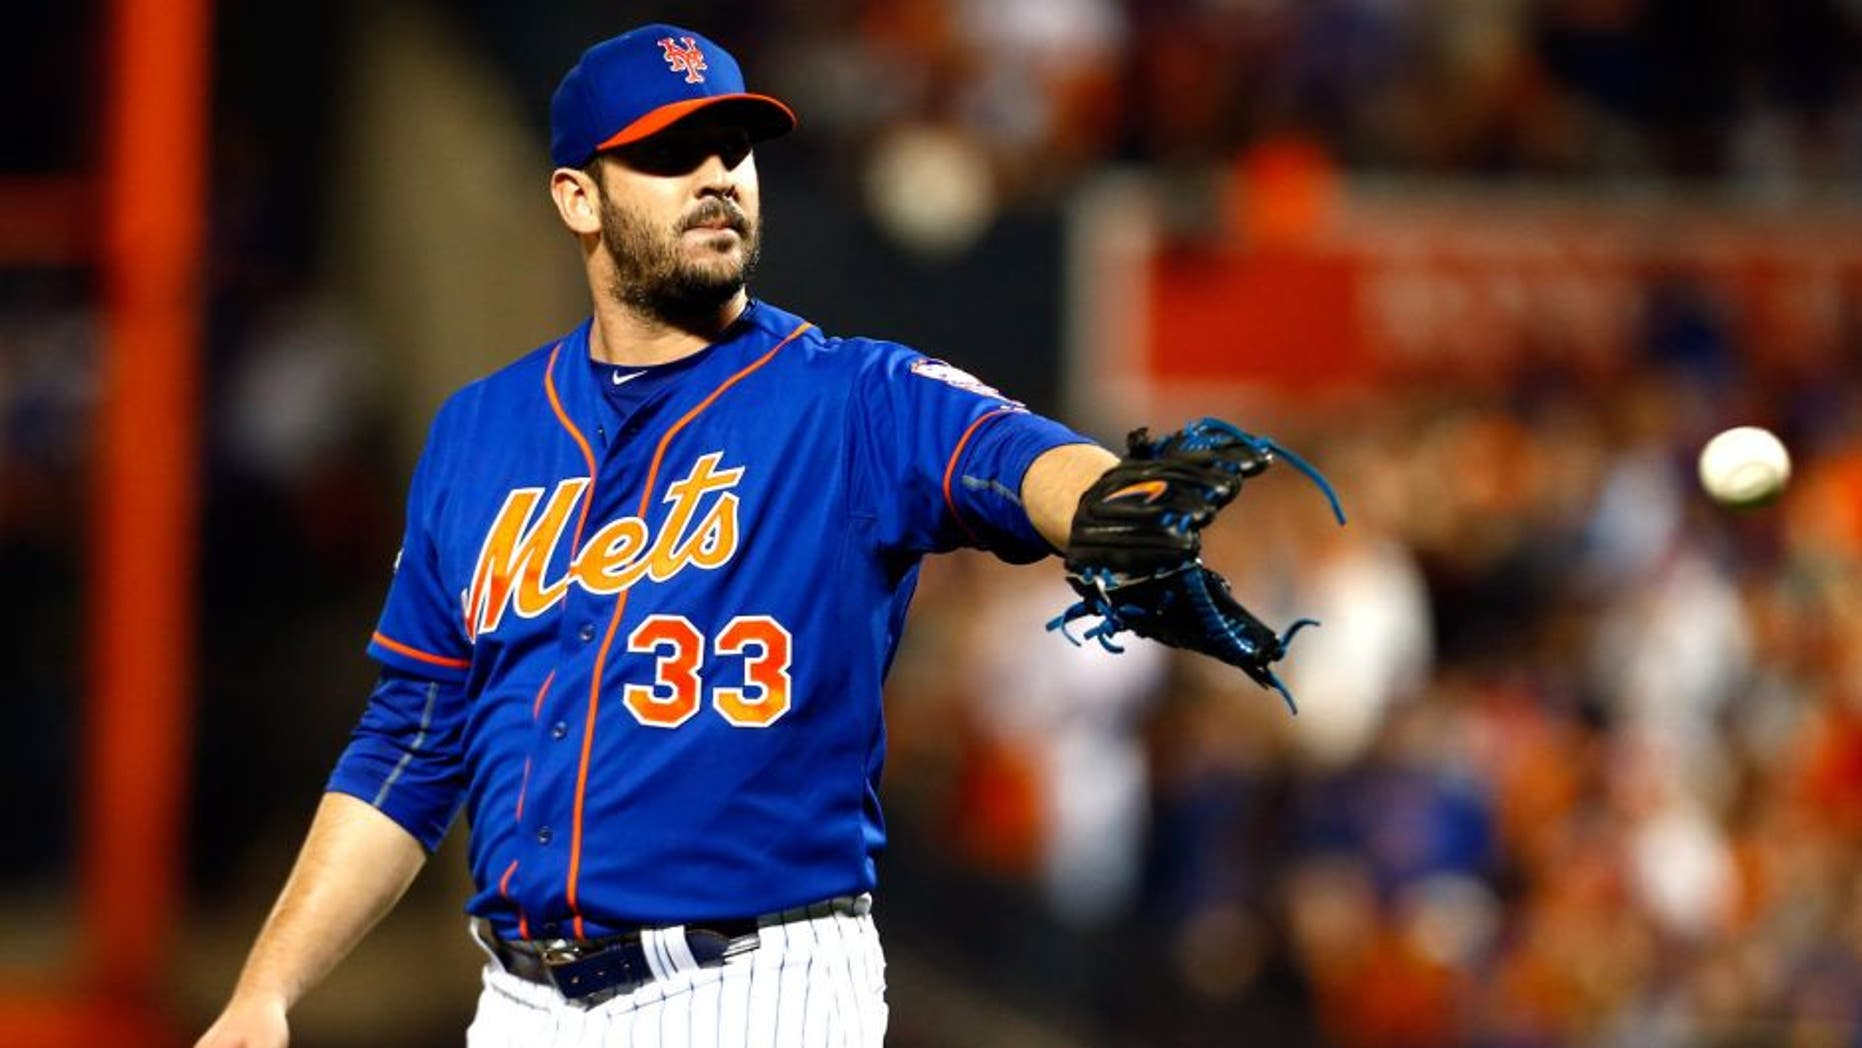 NEW YORK, NY - OCTOBER 12: Matt Harvey #33 of the New York Mets looks to pitch in the first inning against the Los Angeles Dodgers during game three of the National League Division Series at Citi Field on October 12, 2015 in New York City. (Photo by Mike Stobe/Getty Images)